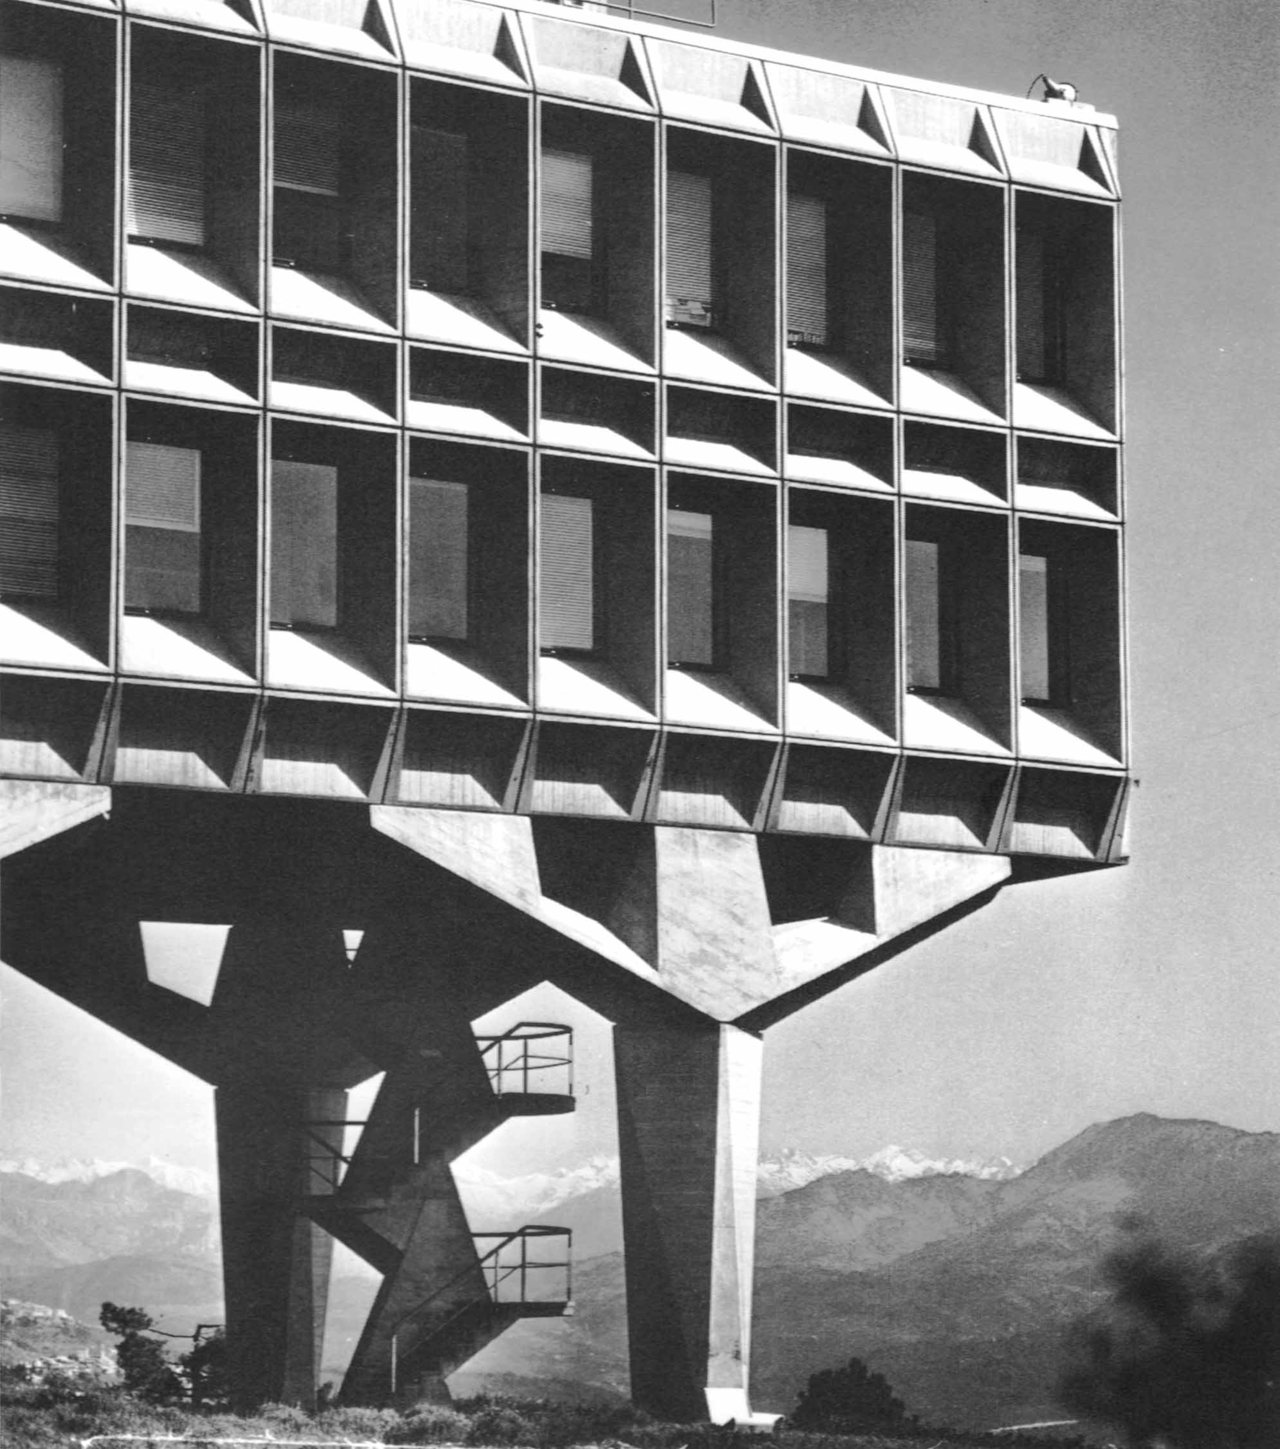 La Gaude France  City pictures : ... CONTAINER: IBM France Research Center, La Gaude, France, 1958 62 dav